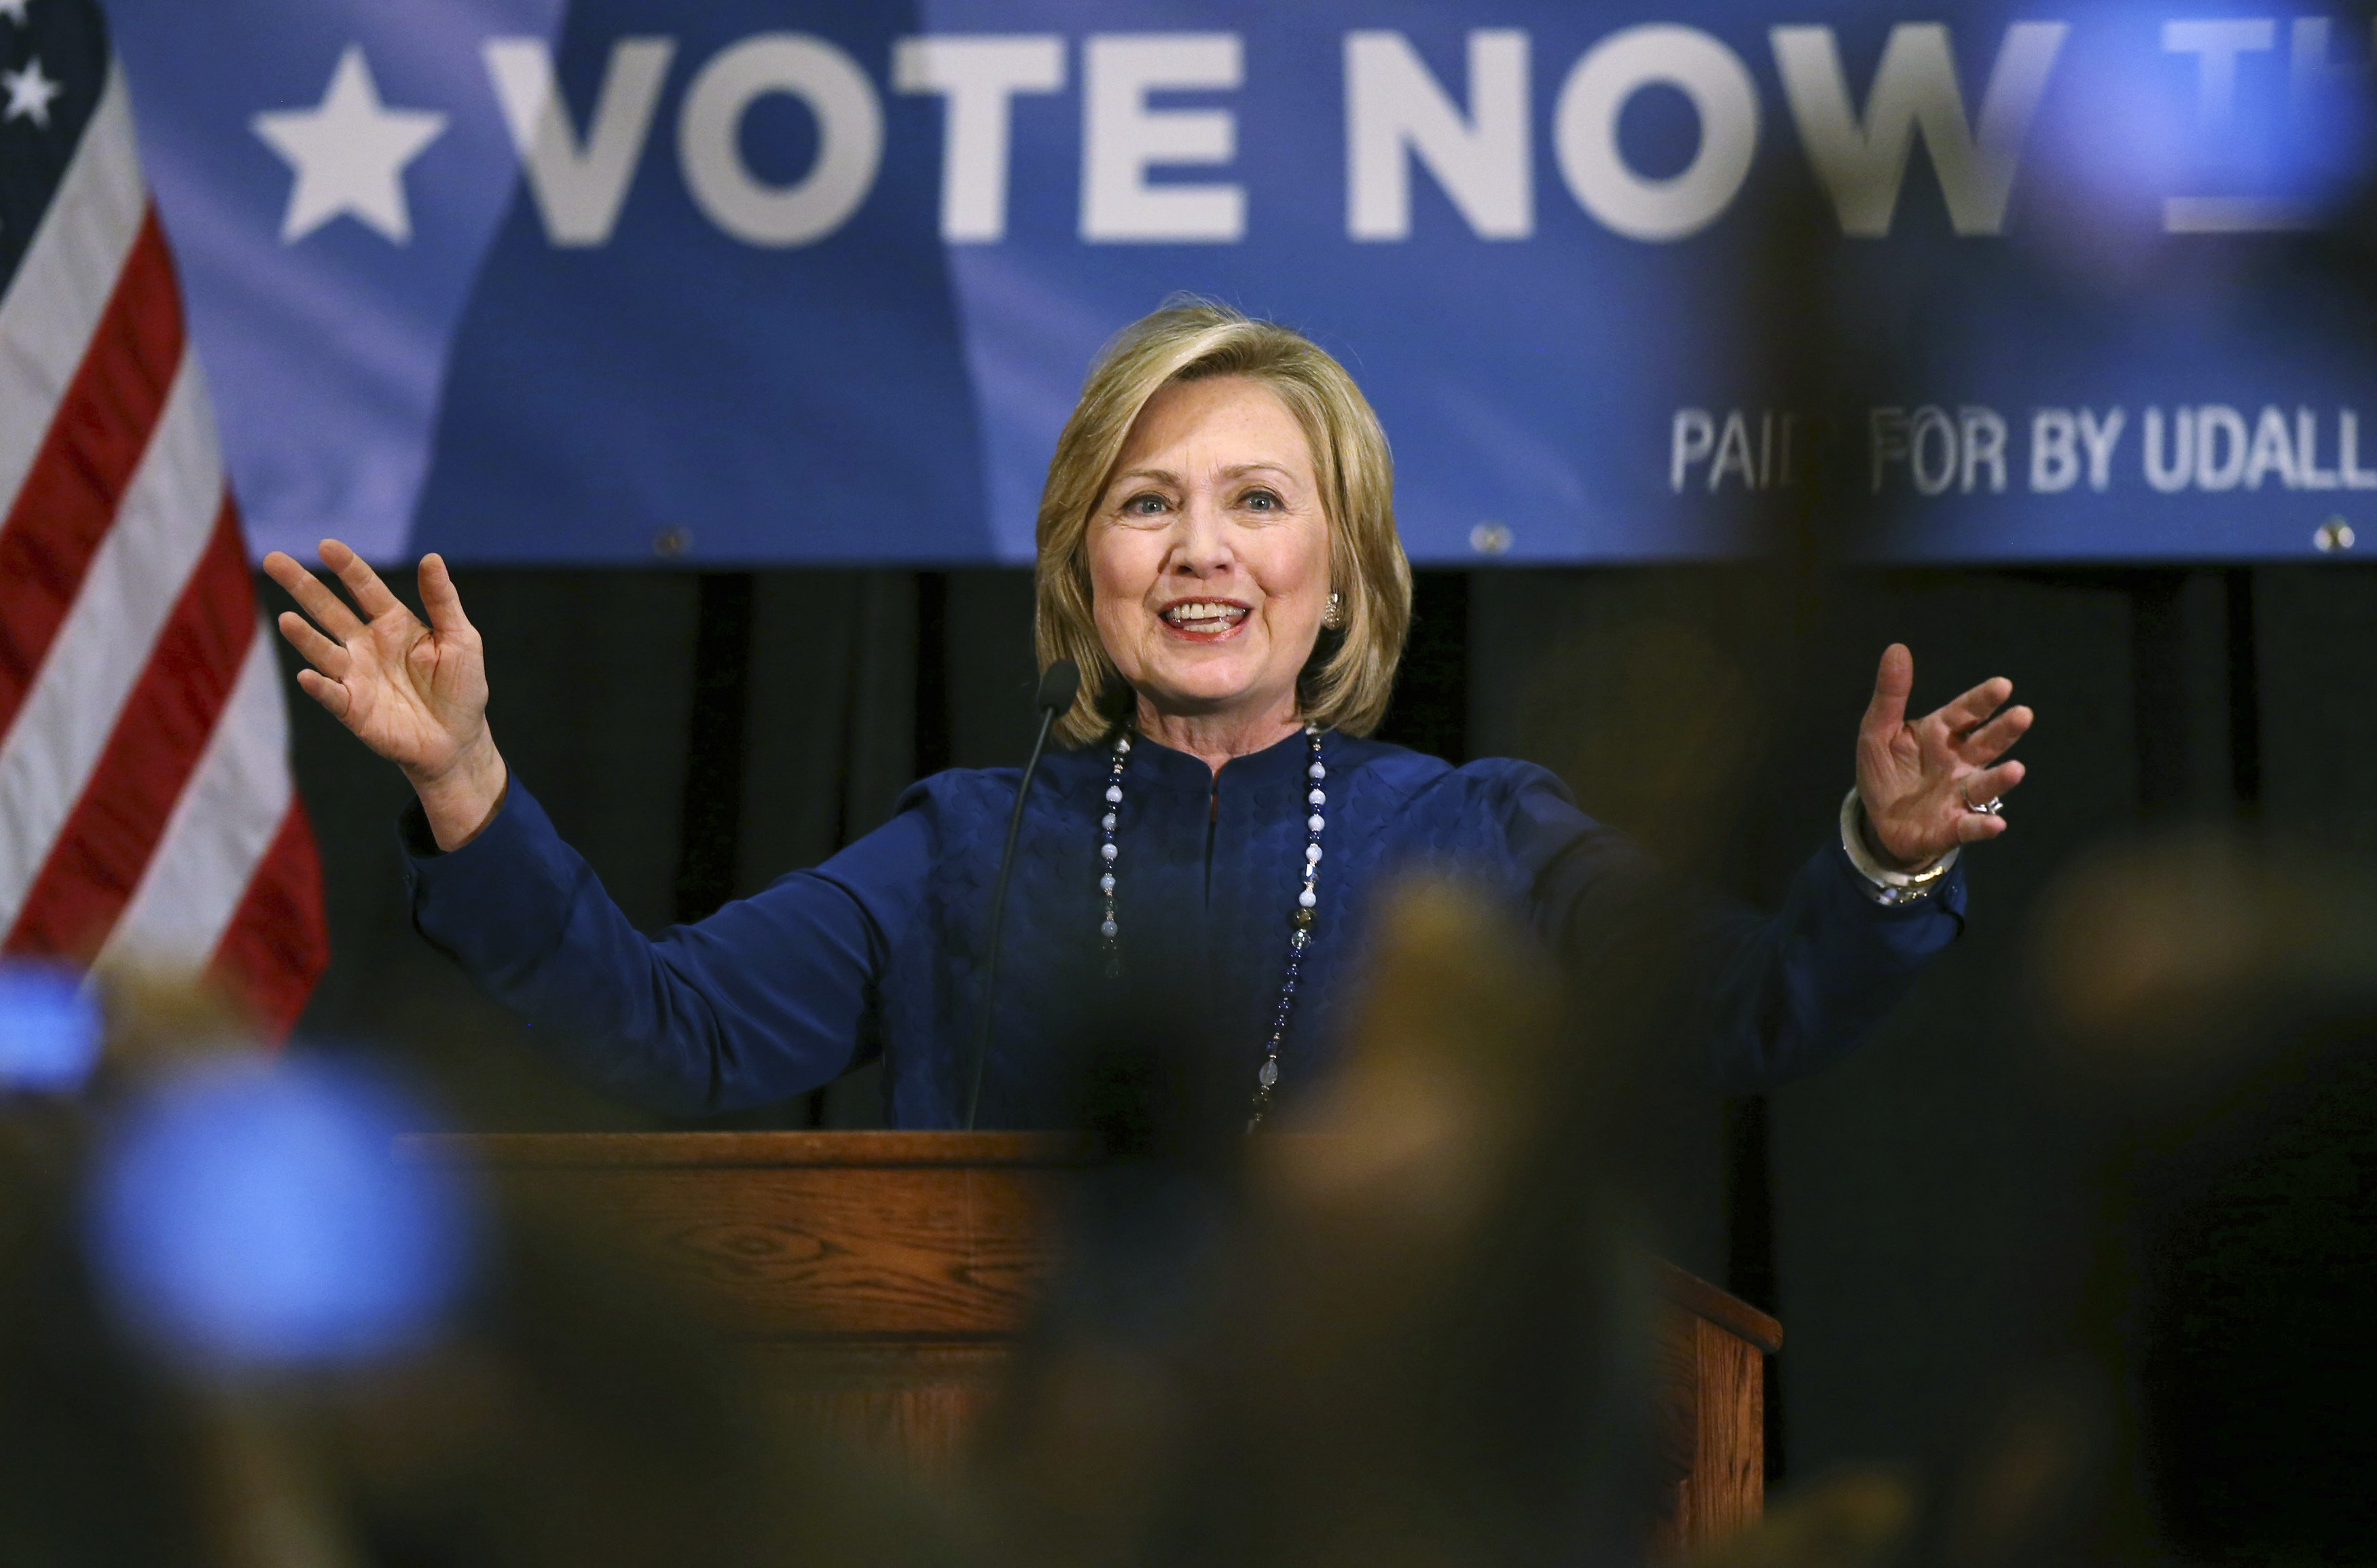 Former Secretary of State Hillary Rodham Clinton speaks to a crowd during a campaign stop to promote Democrats in re-election bids in the east Denver suburb of Aurora, Colo. on Oct. 21, 2014.